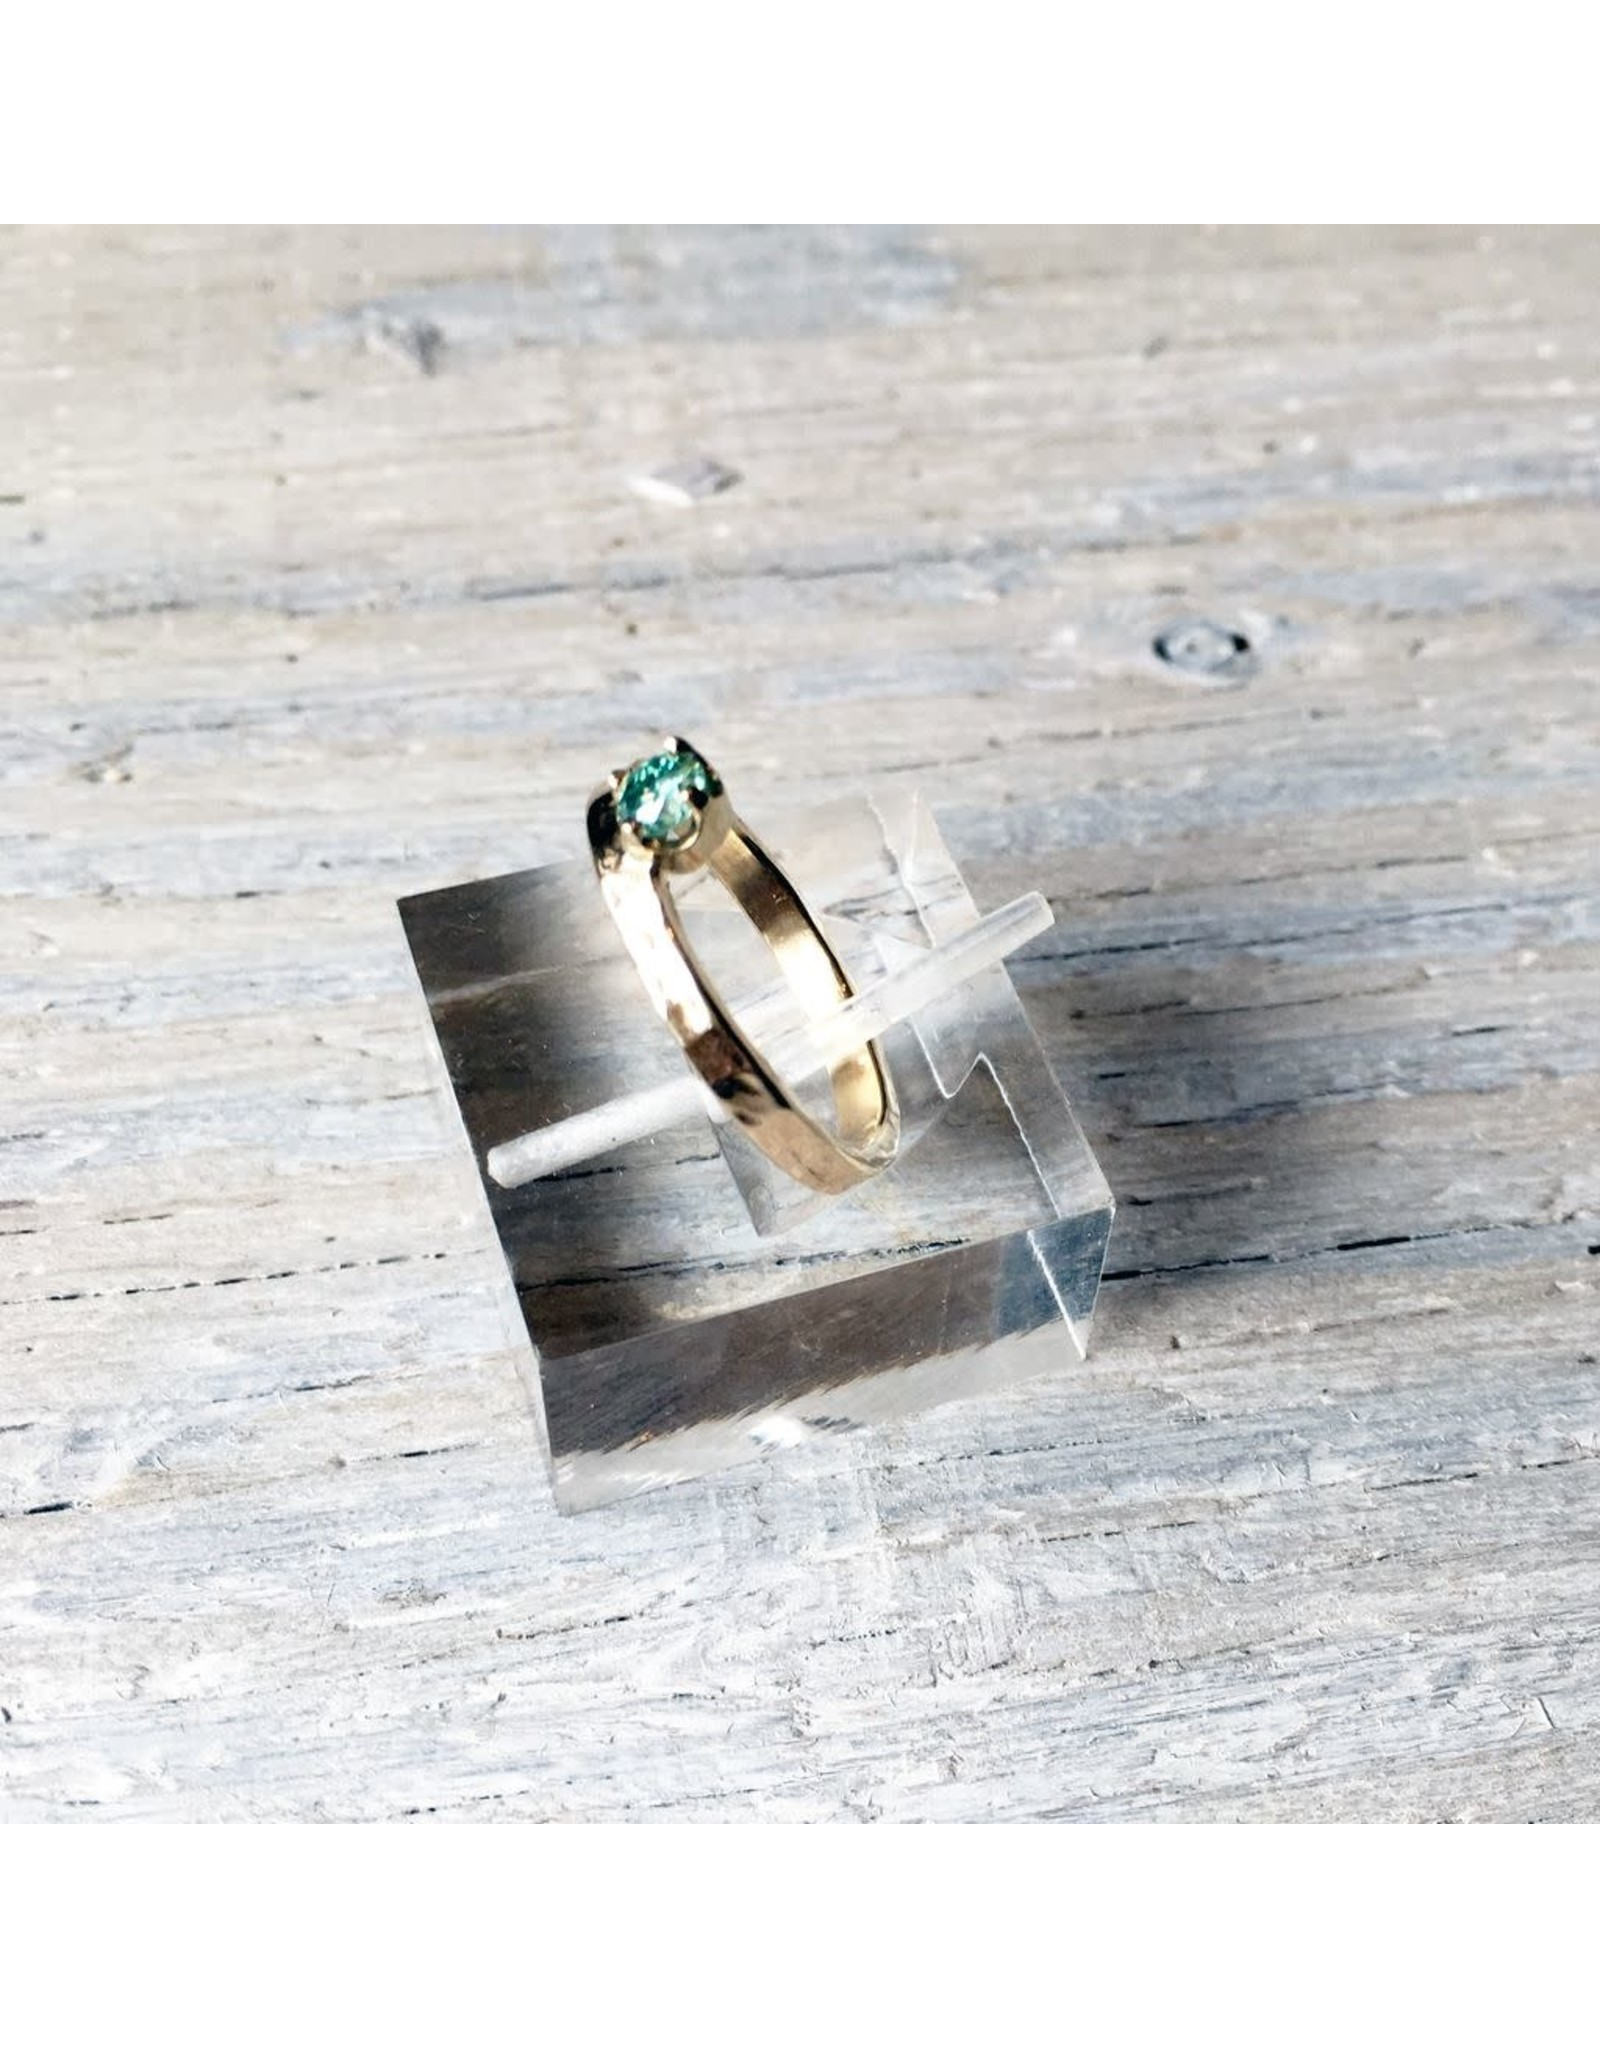 Chris Gillrie Regal Ring. 4mm Moissenite in 14K yellow gold offset from band. Size 6